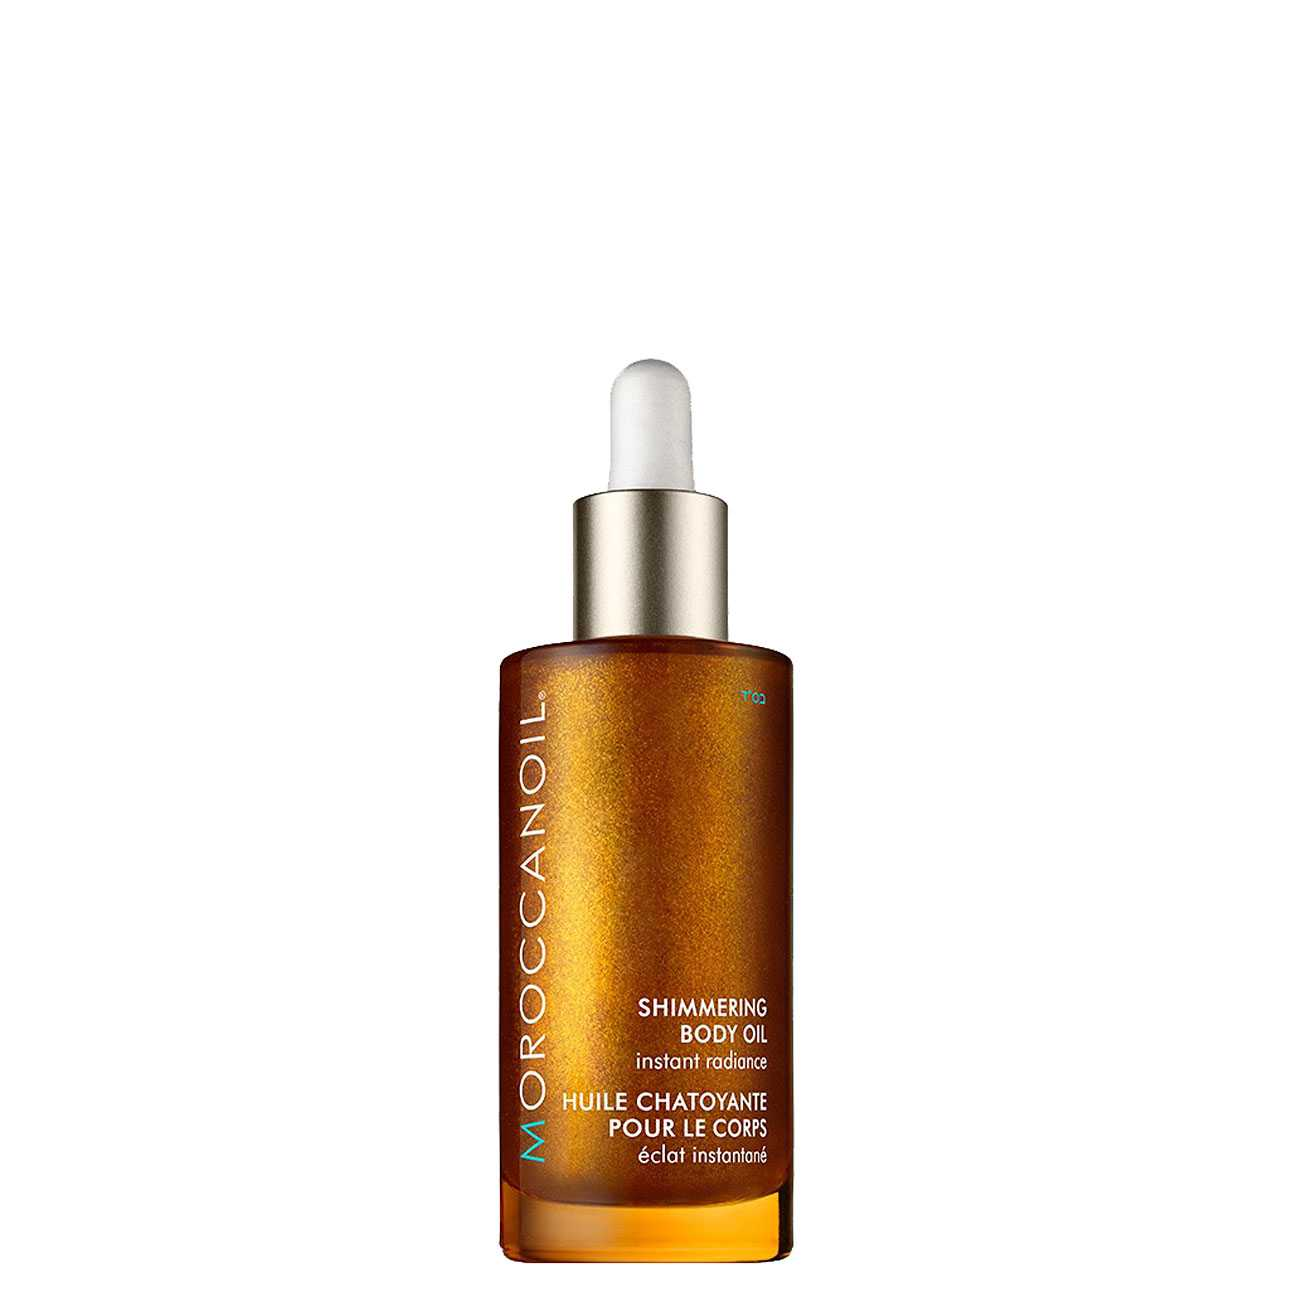 SHIMMERING BODY OIL 50 ML imagine produs